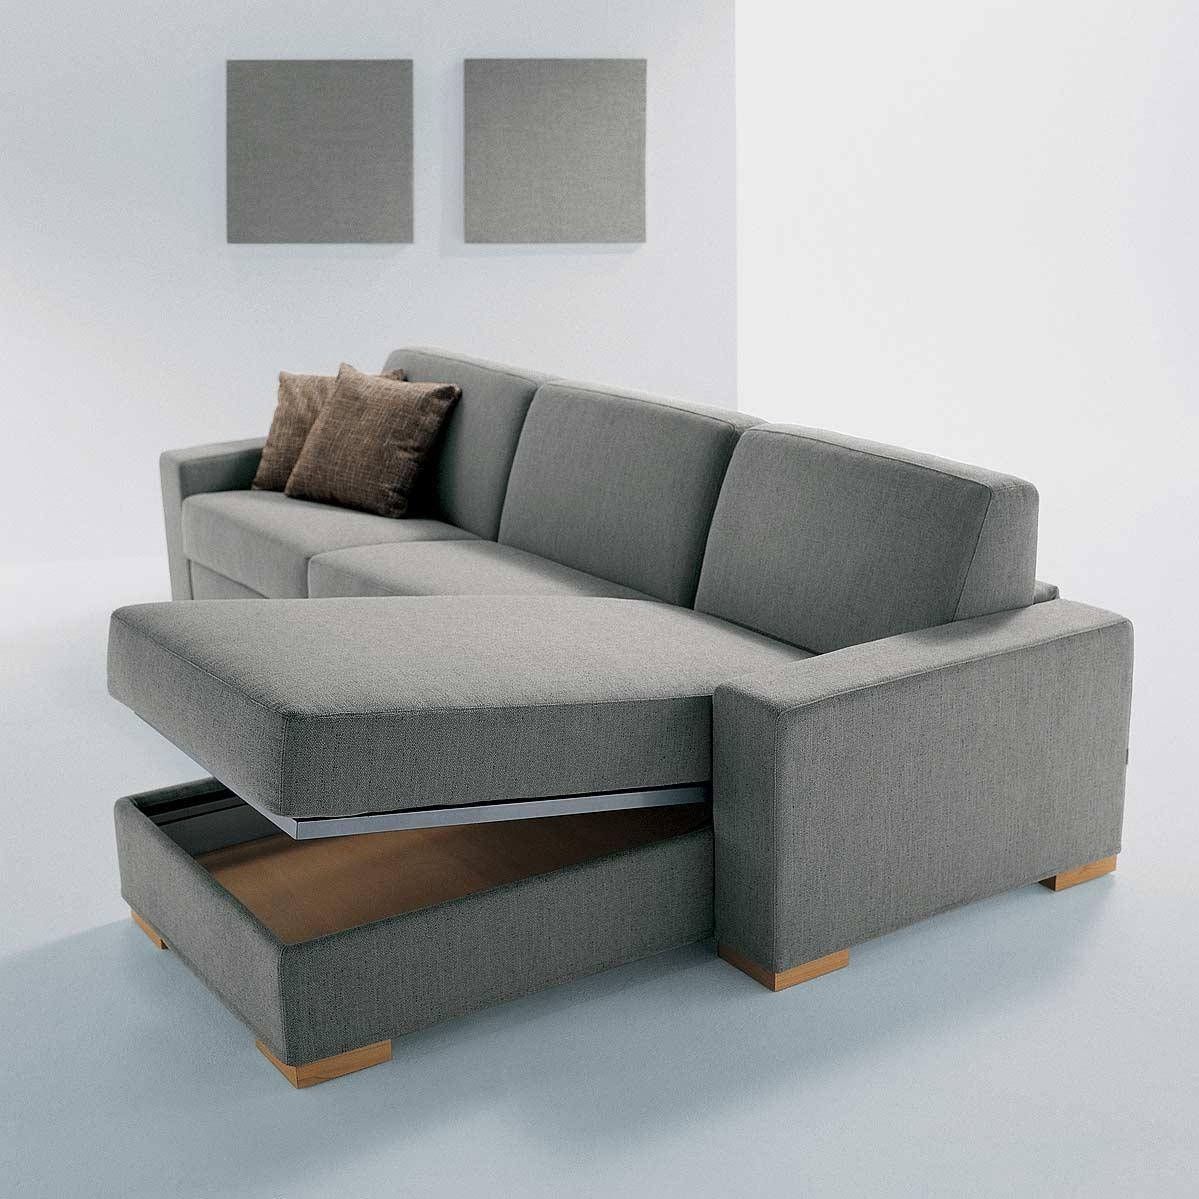 The Duke Sectional Sofa With Storage Has Everything You Need – Tevami With Regard To Sectional Sofa With Storage (View 9 of 20)